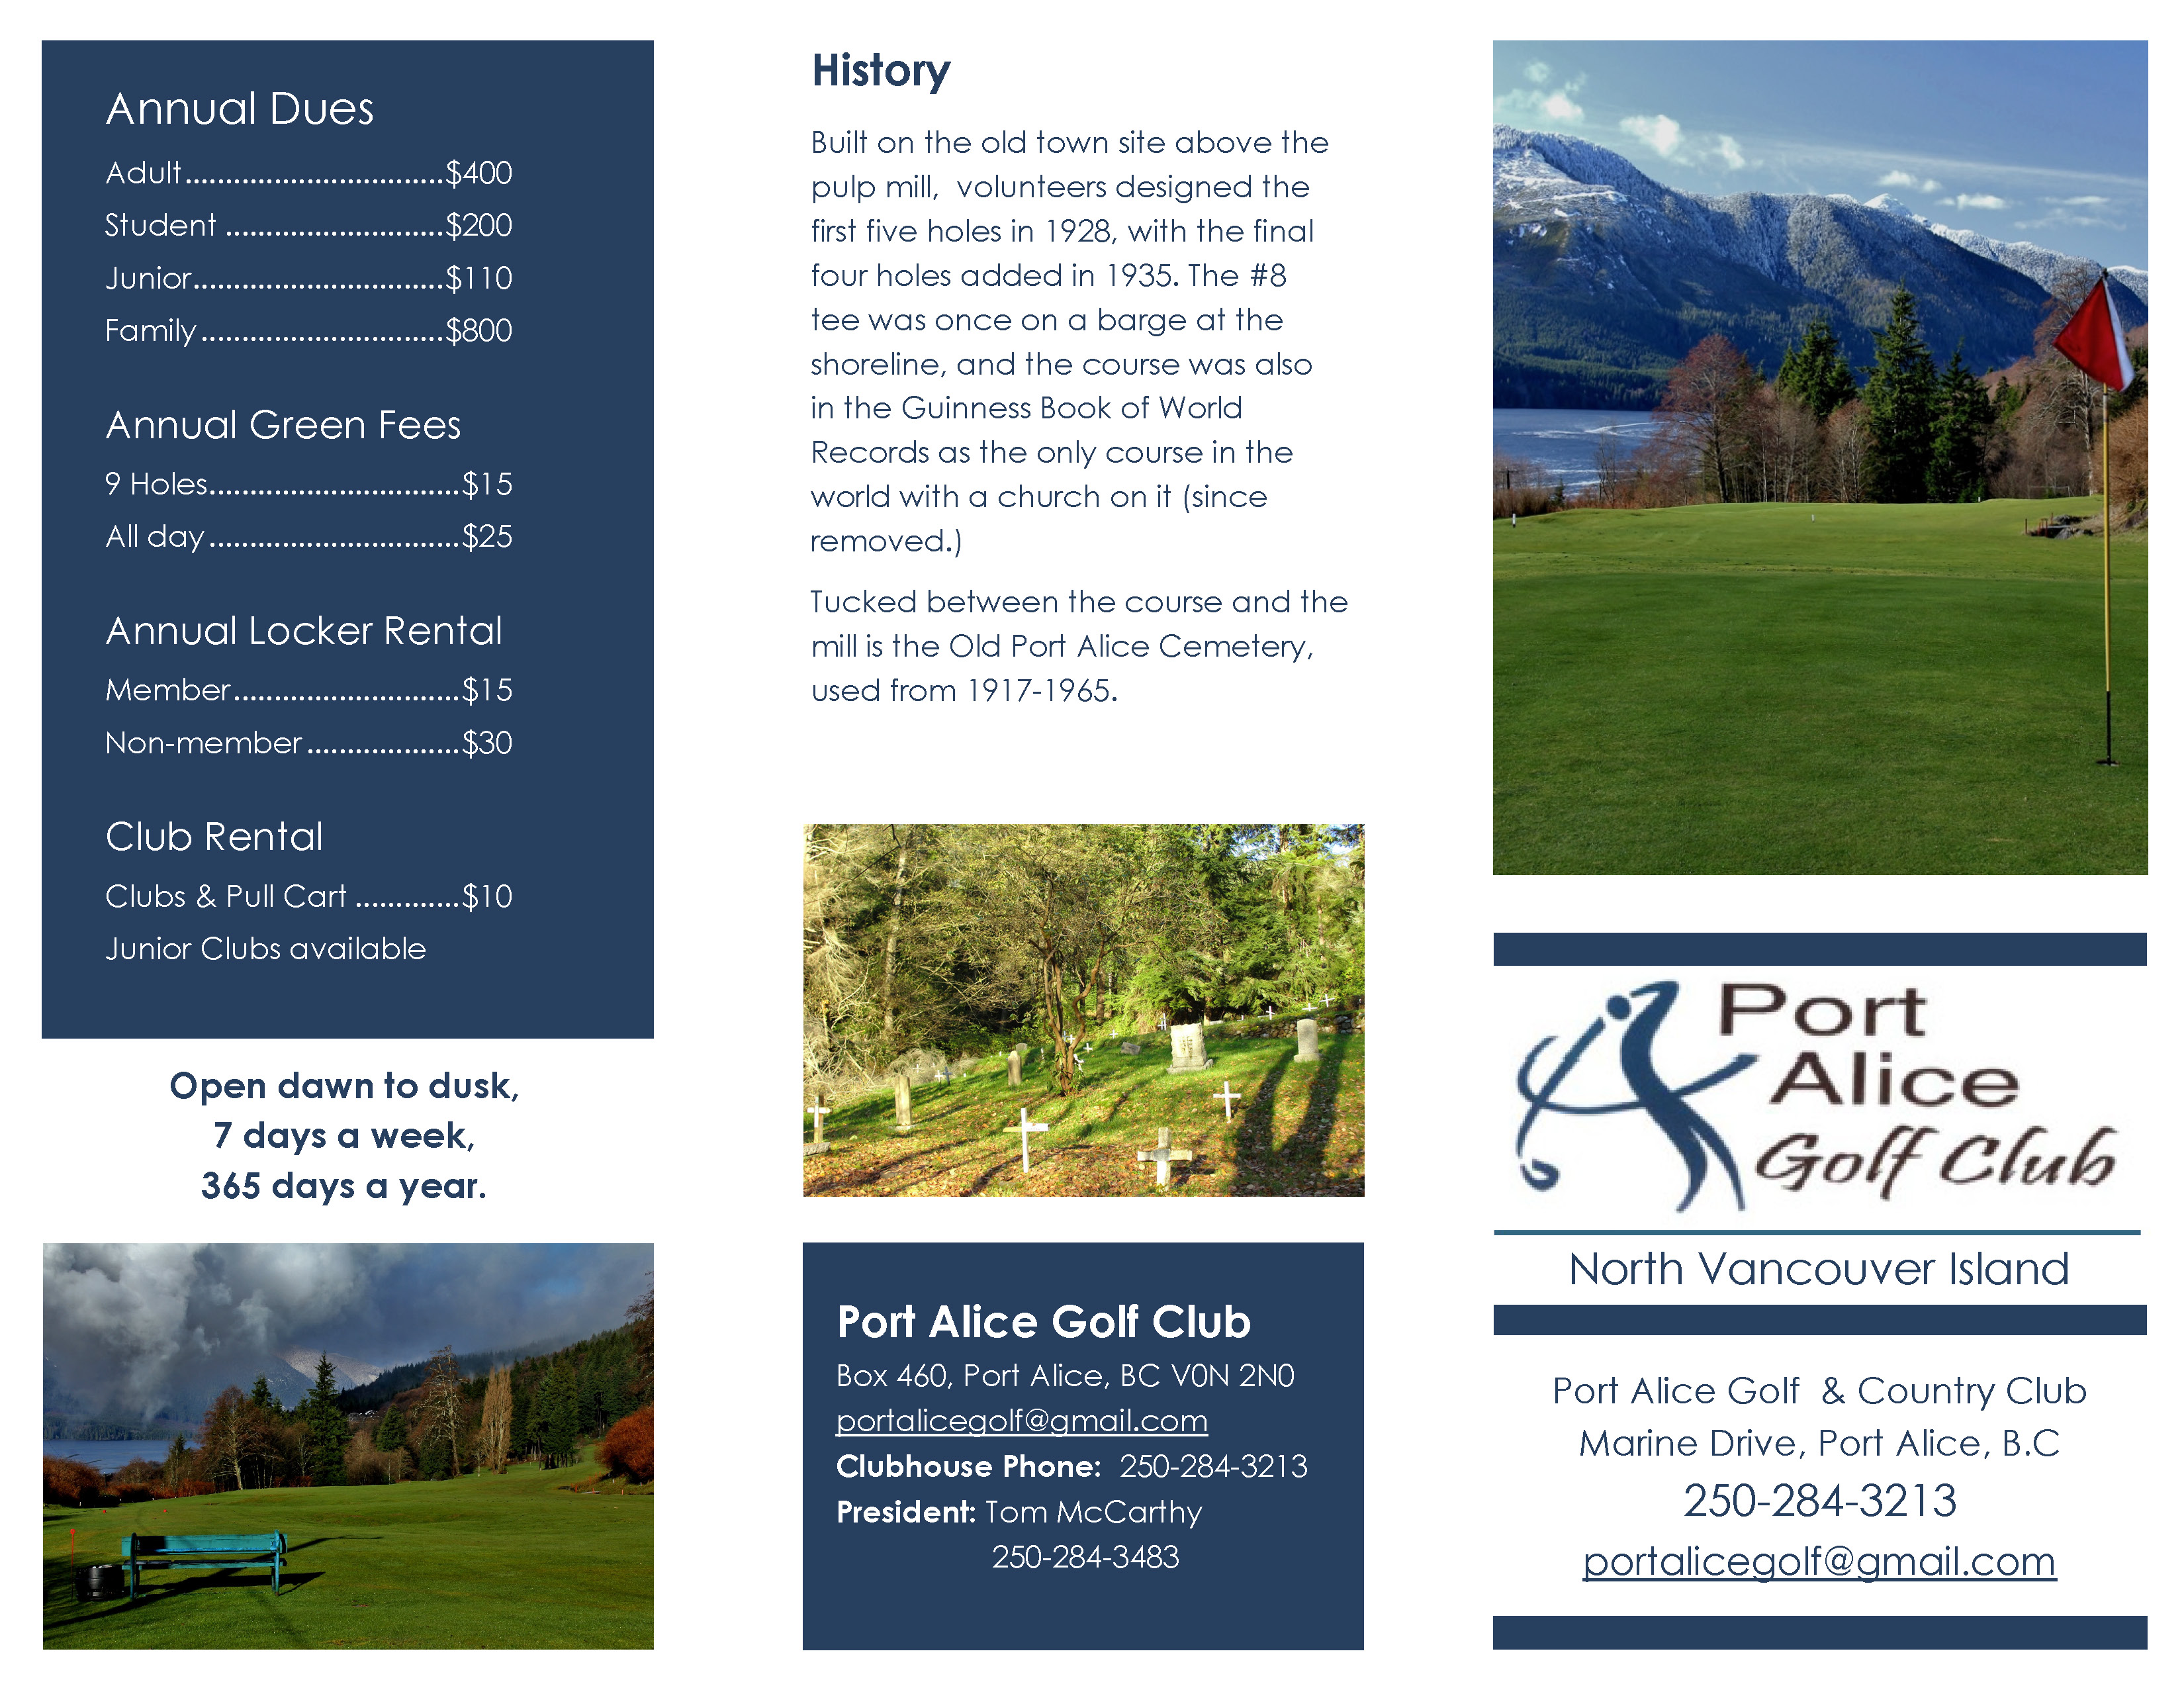 Port Alice Golf Club Brochure May 24, 2016_Page_1